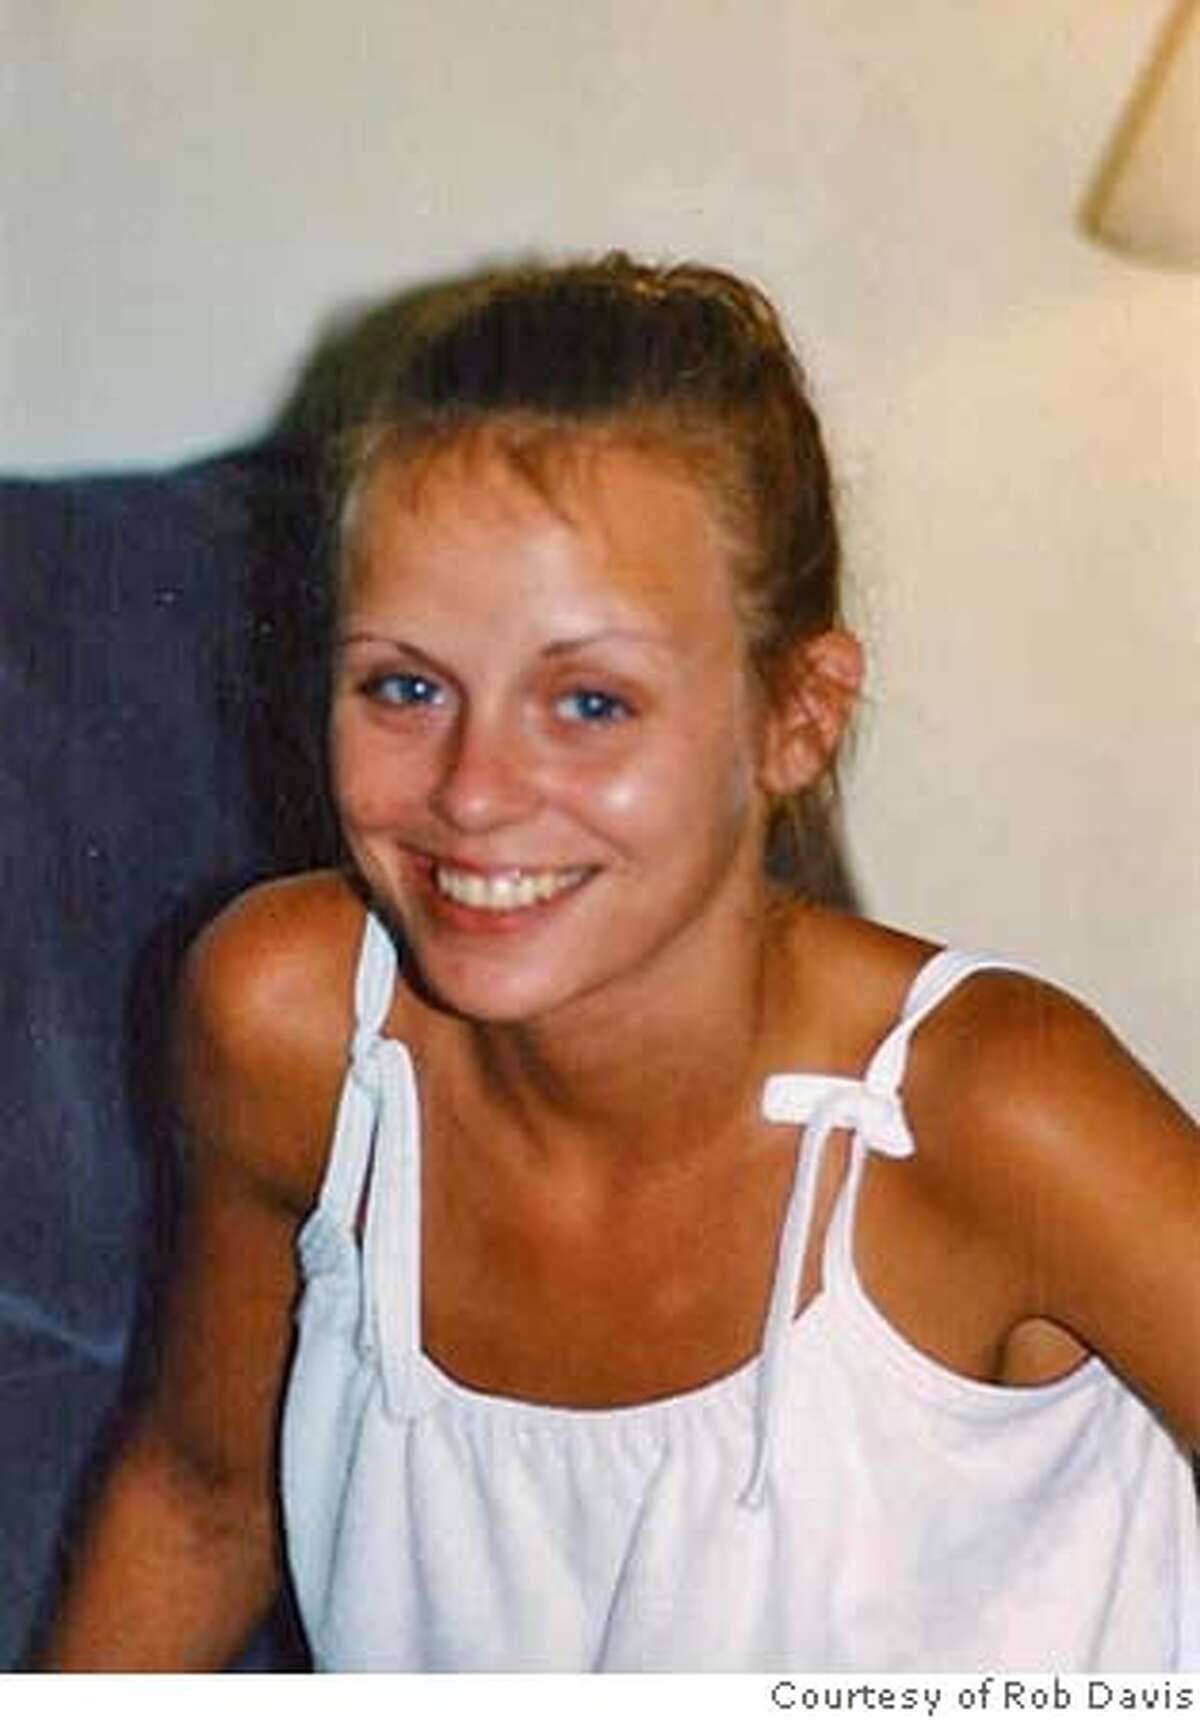 Rhonda Bye in her younger days in Washington state, before she came to San Francisco nearly three years ago as a heroin addict and became homeless. Courtesy Rob Davis